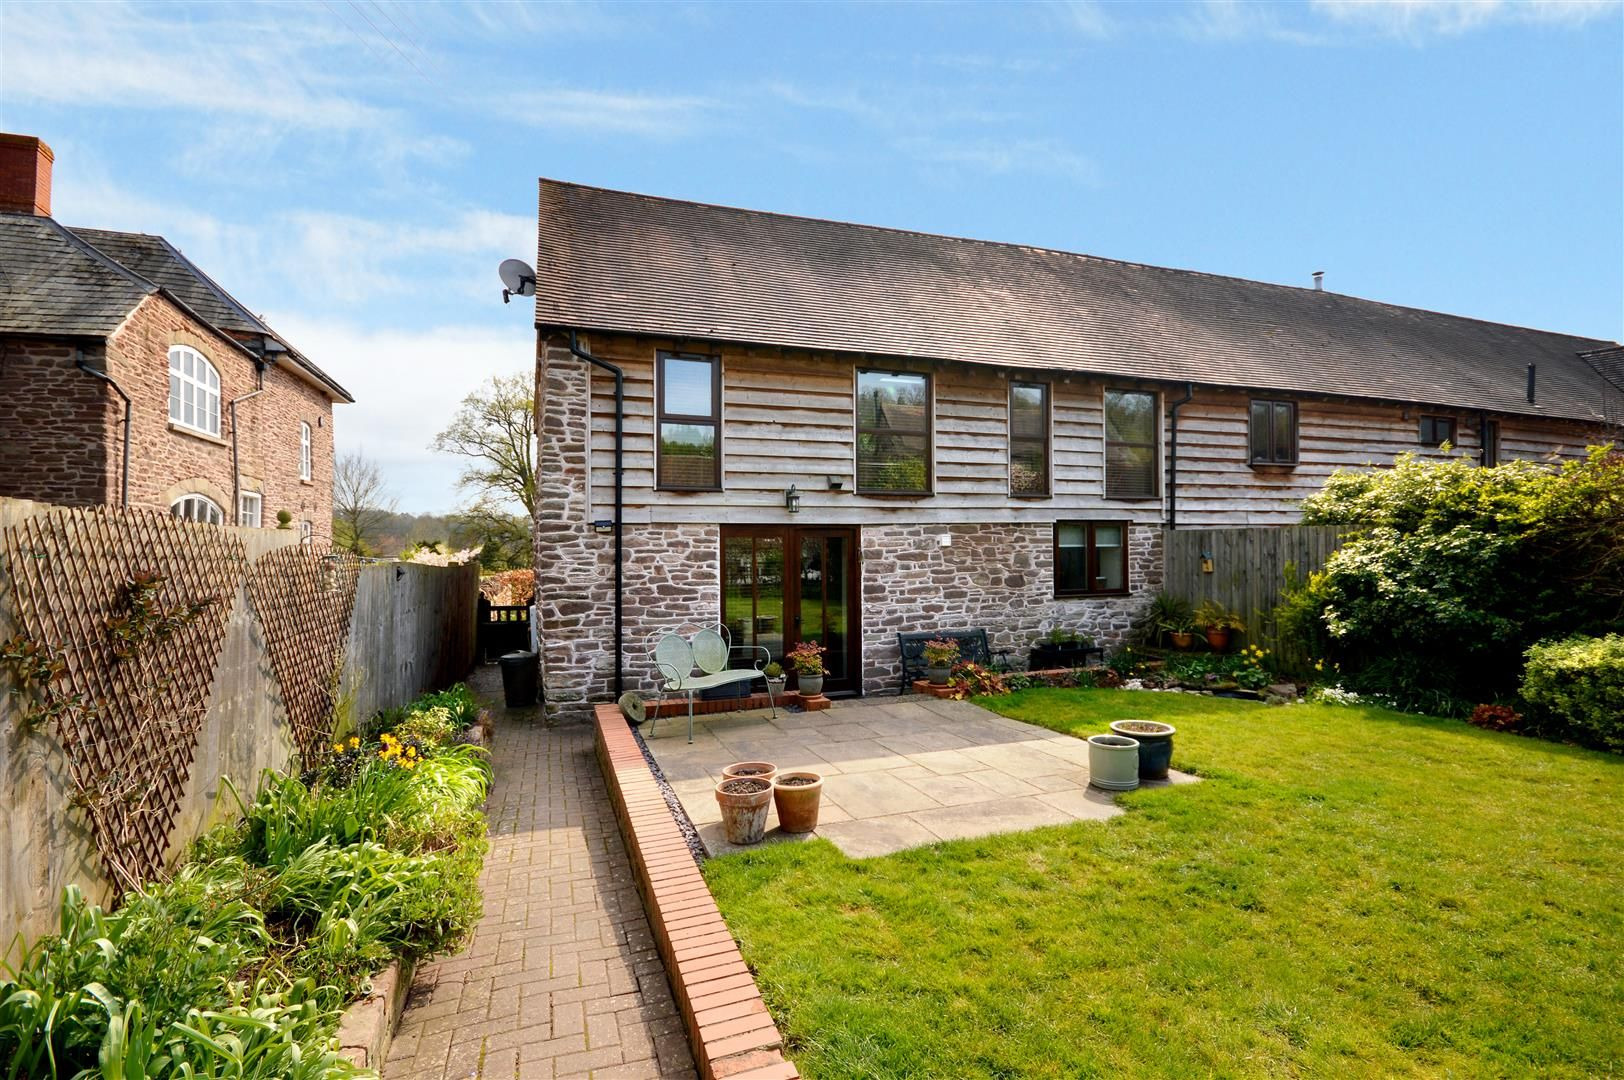 3 bed barn conversion for sale in Bodenham, HR1